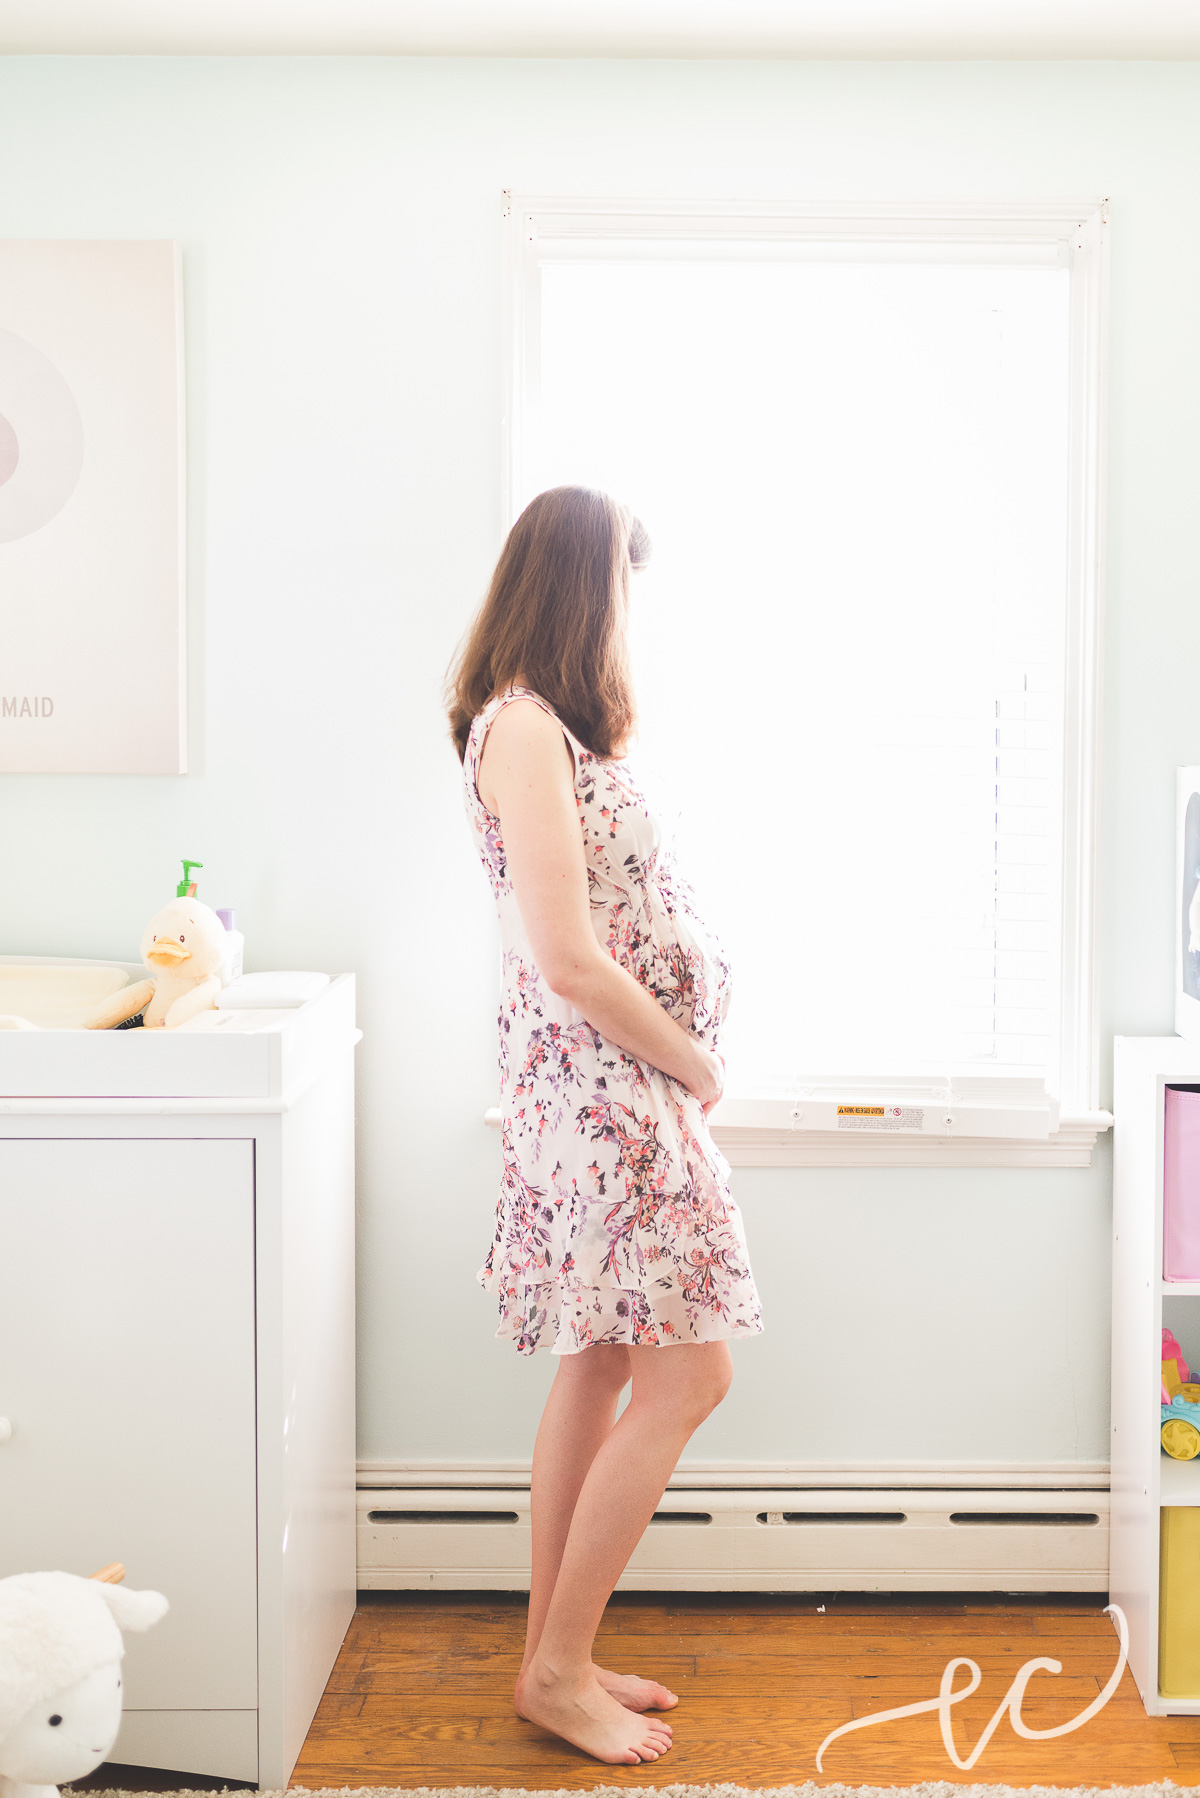 norristown-maternity-photography-11.jpg